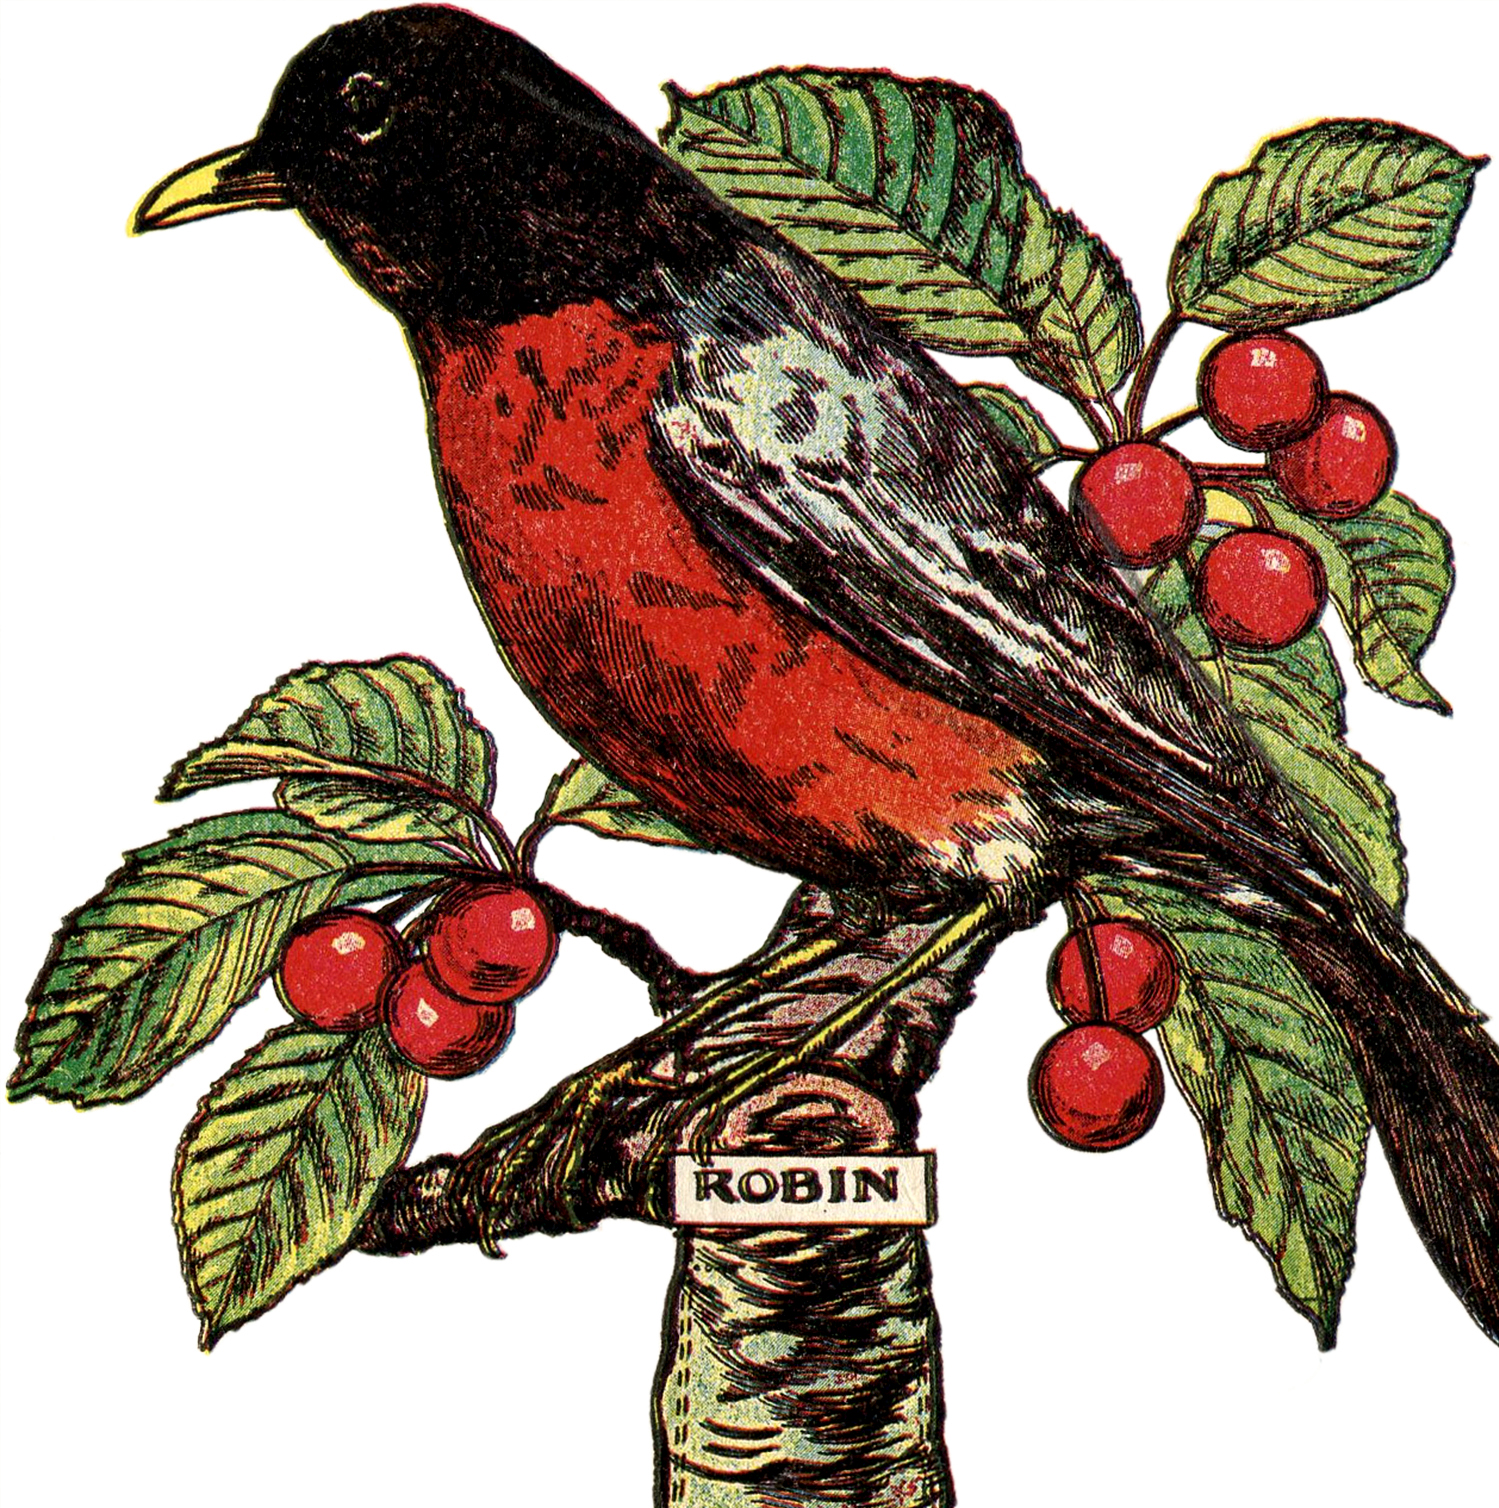 Free Robin Clip Art Image with Cherries!.